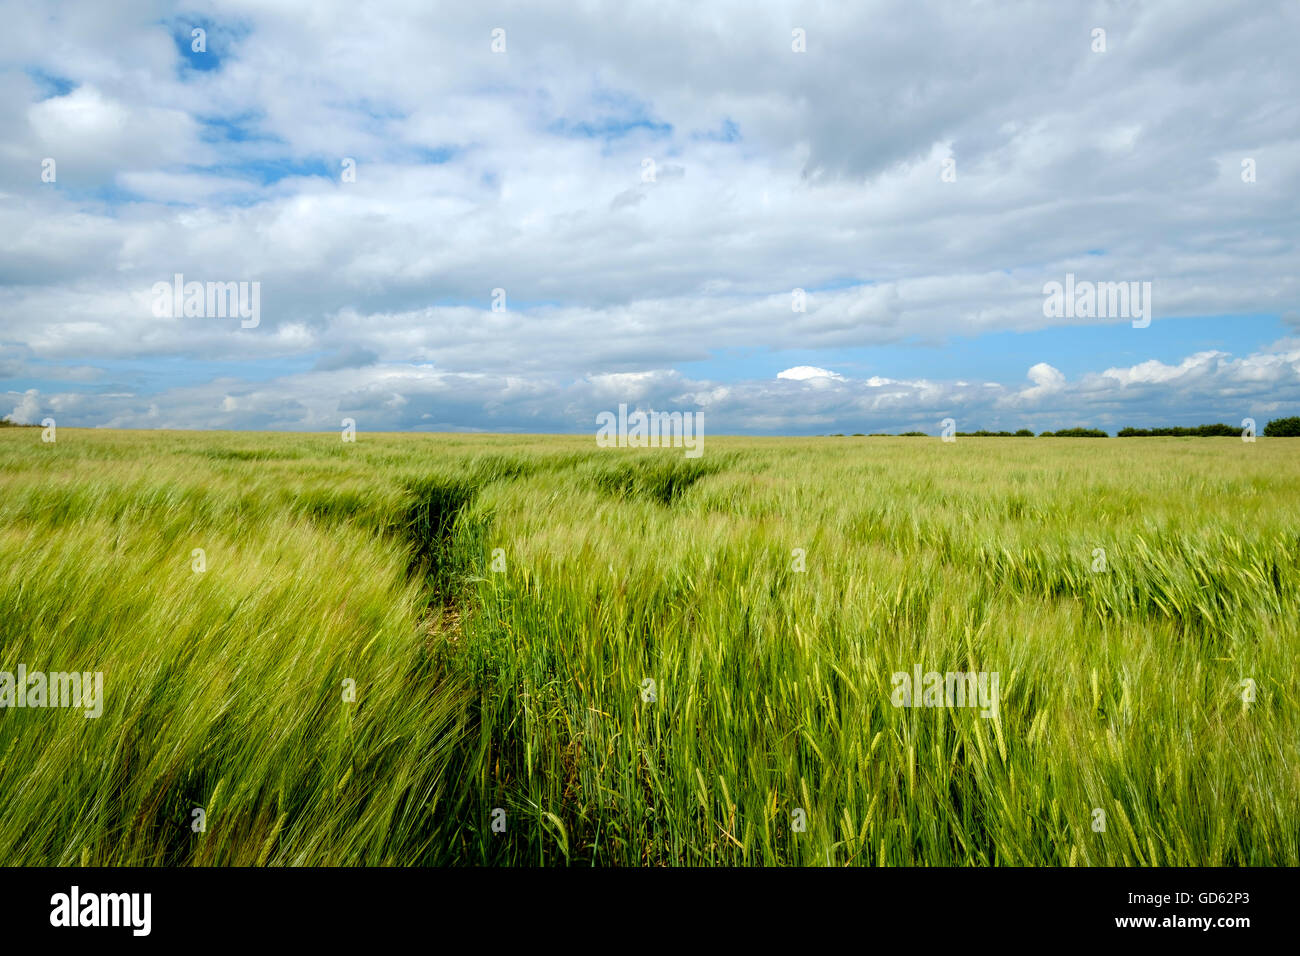 Green barley field in summer East Yorkshire, England - Stock Image